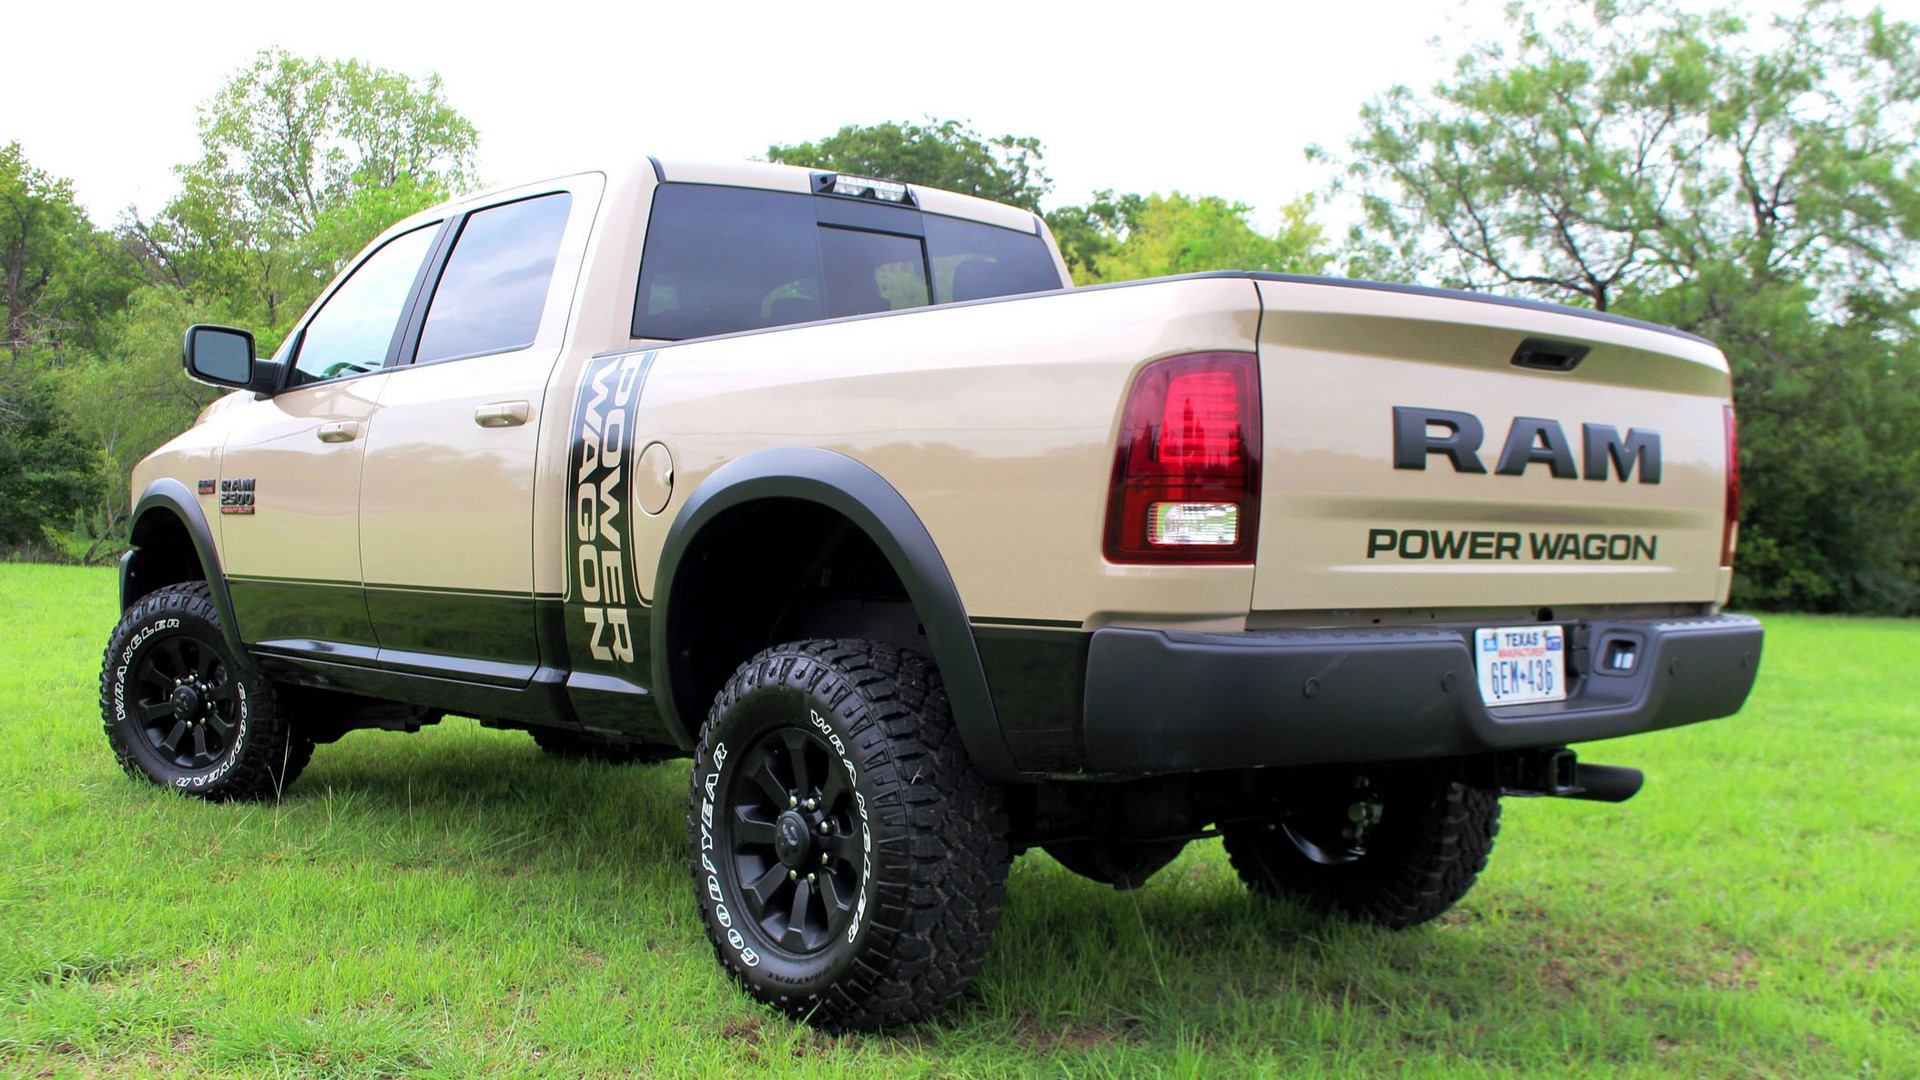 ram-2500-powerwagon-back-corner-2-1